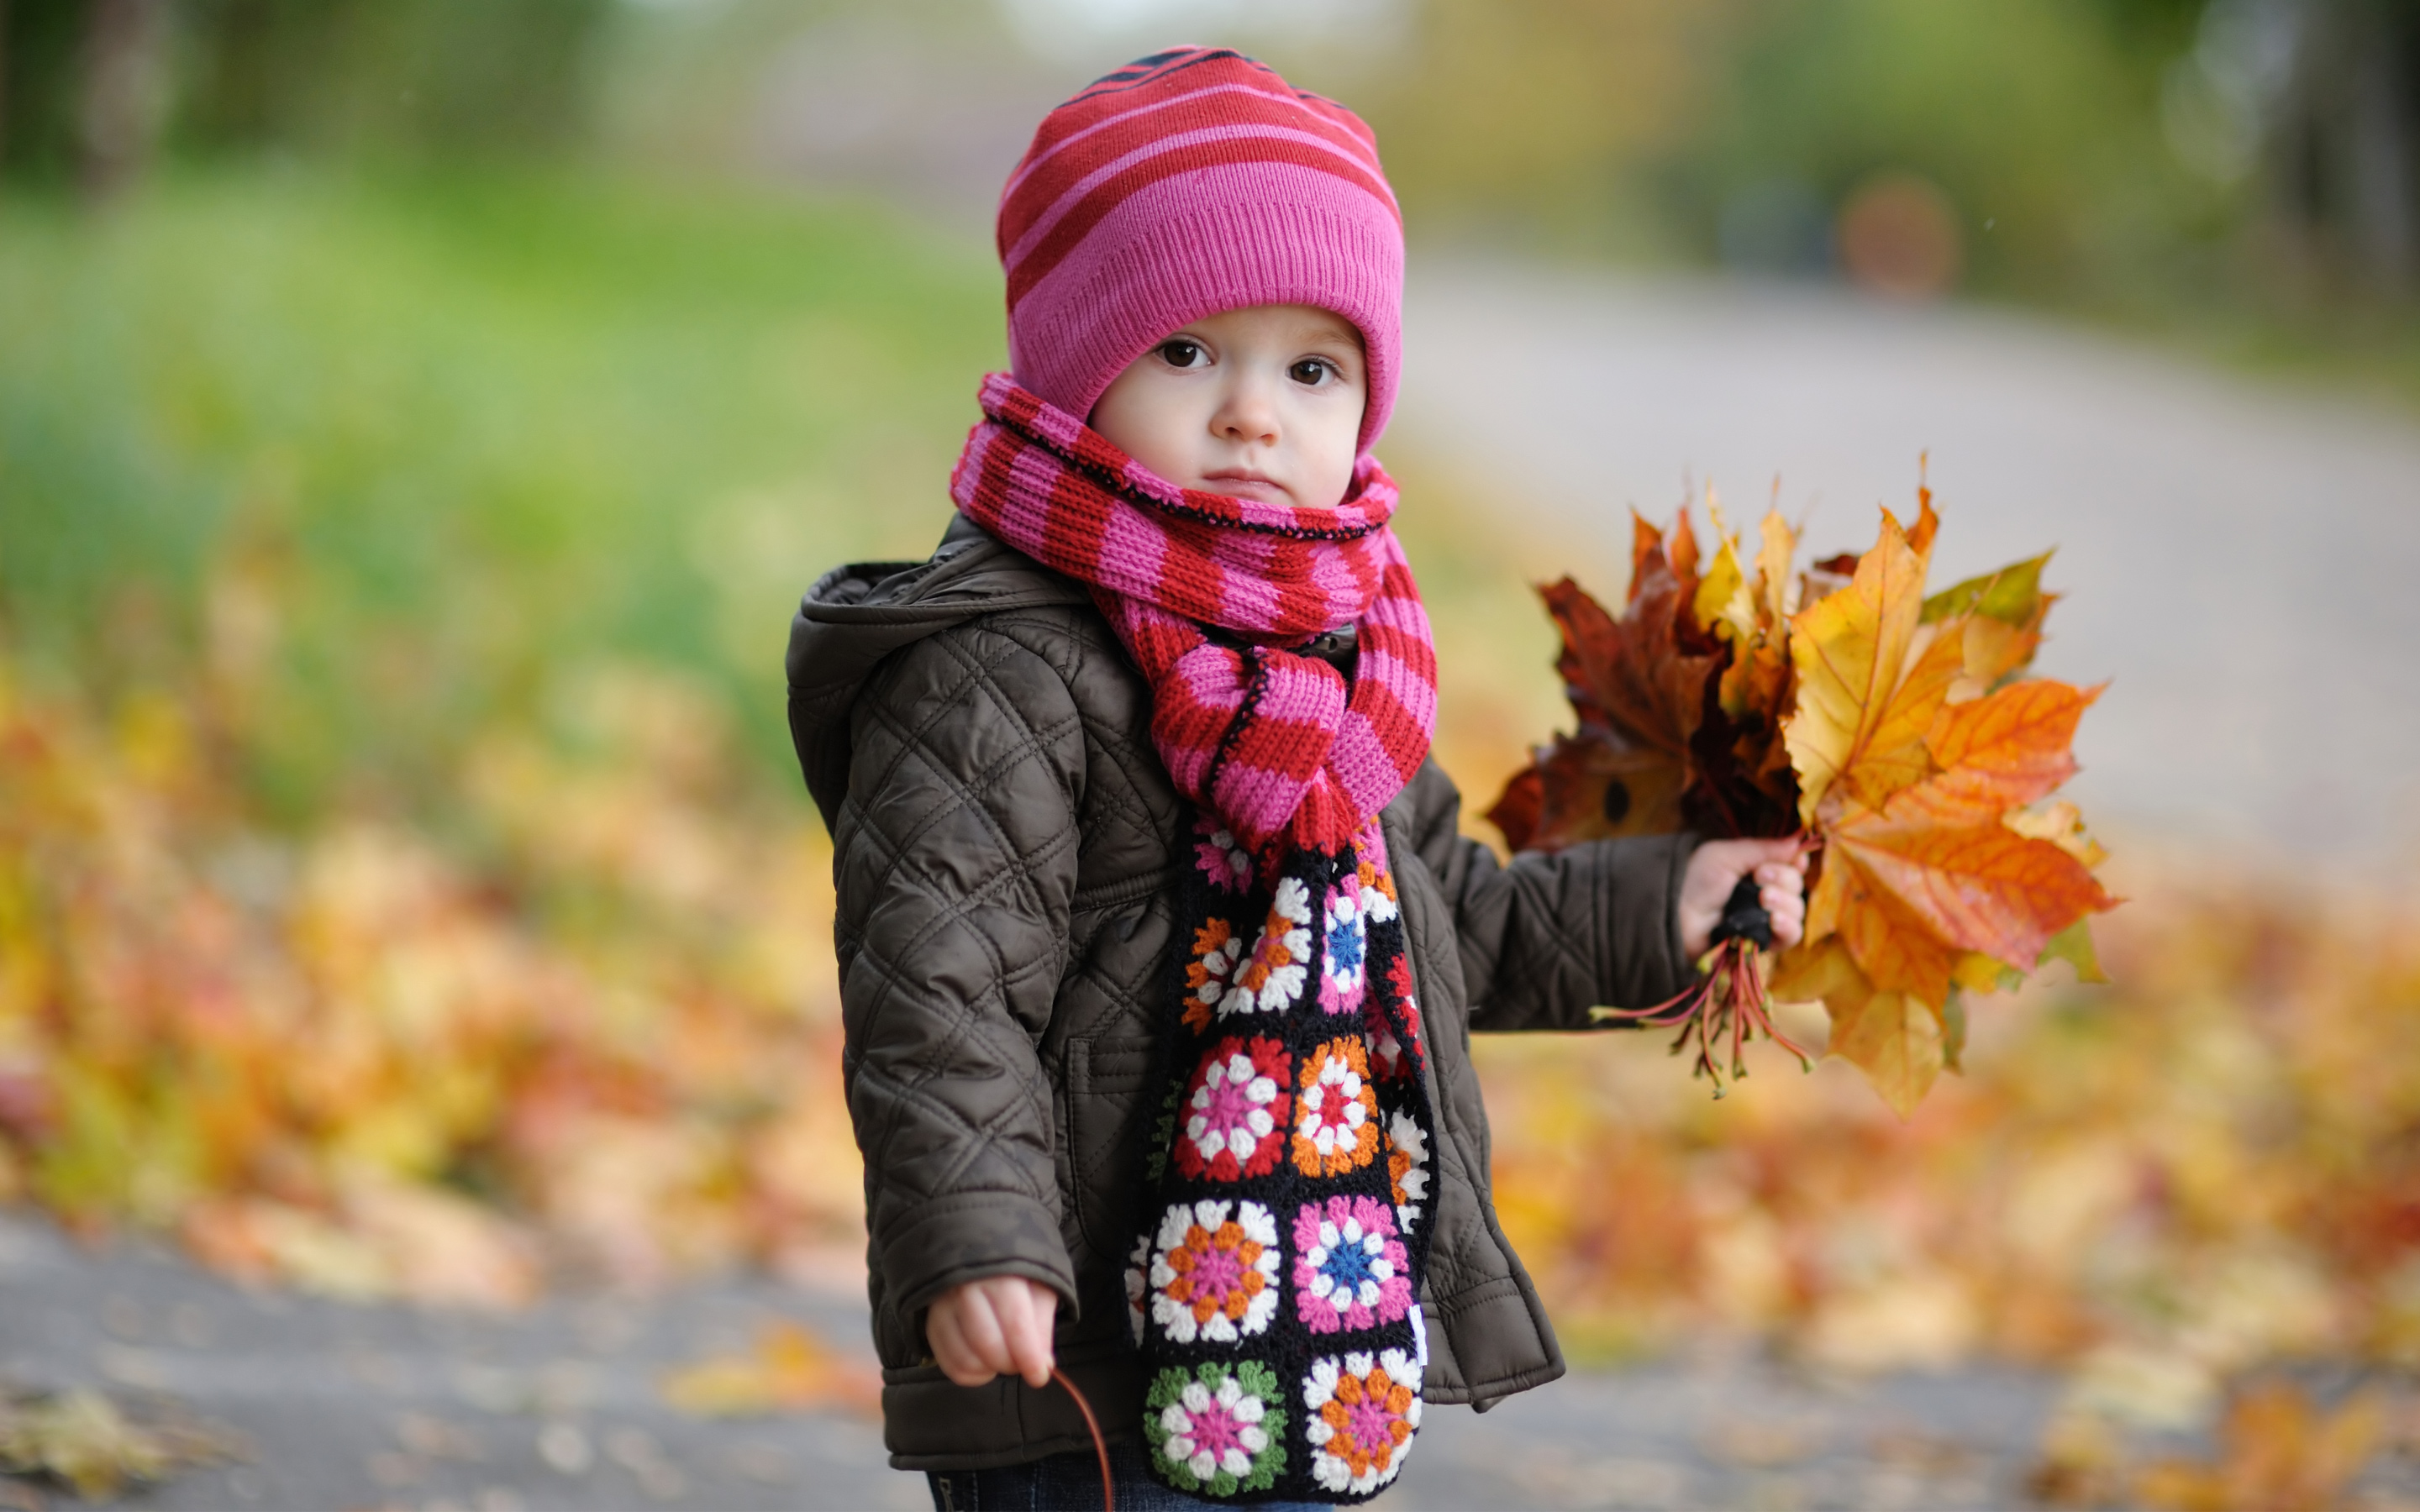 Cute Baby in Autumn Wallpapers HD Wallpapers 2880x1800